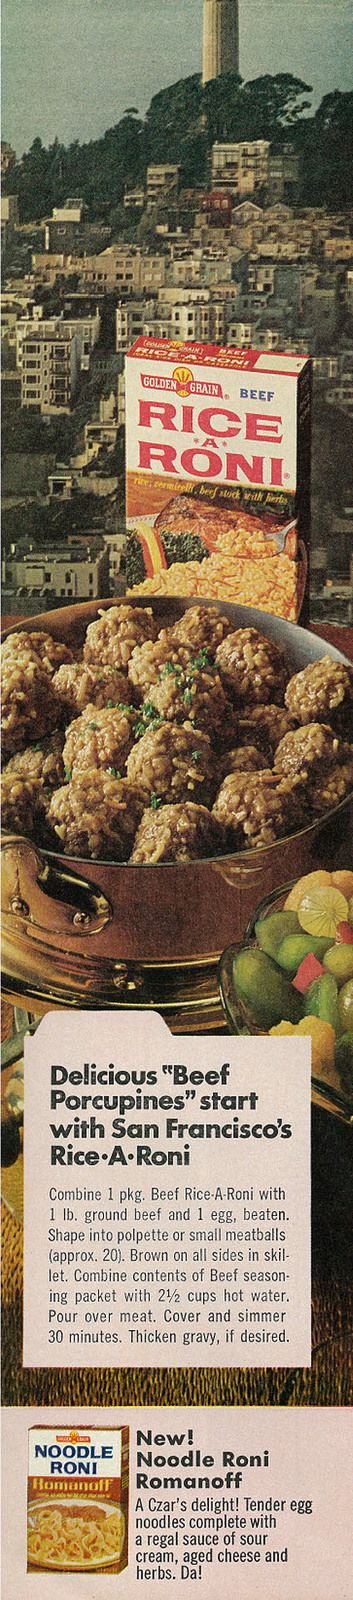 1971 ~ Beef Porcupines | Flickr - Photo Sharing!